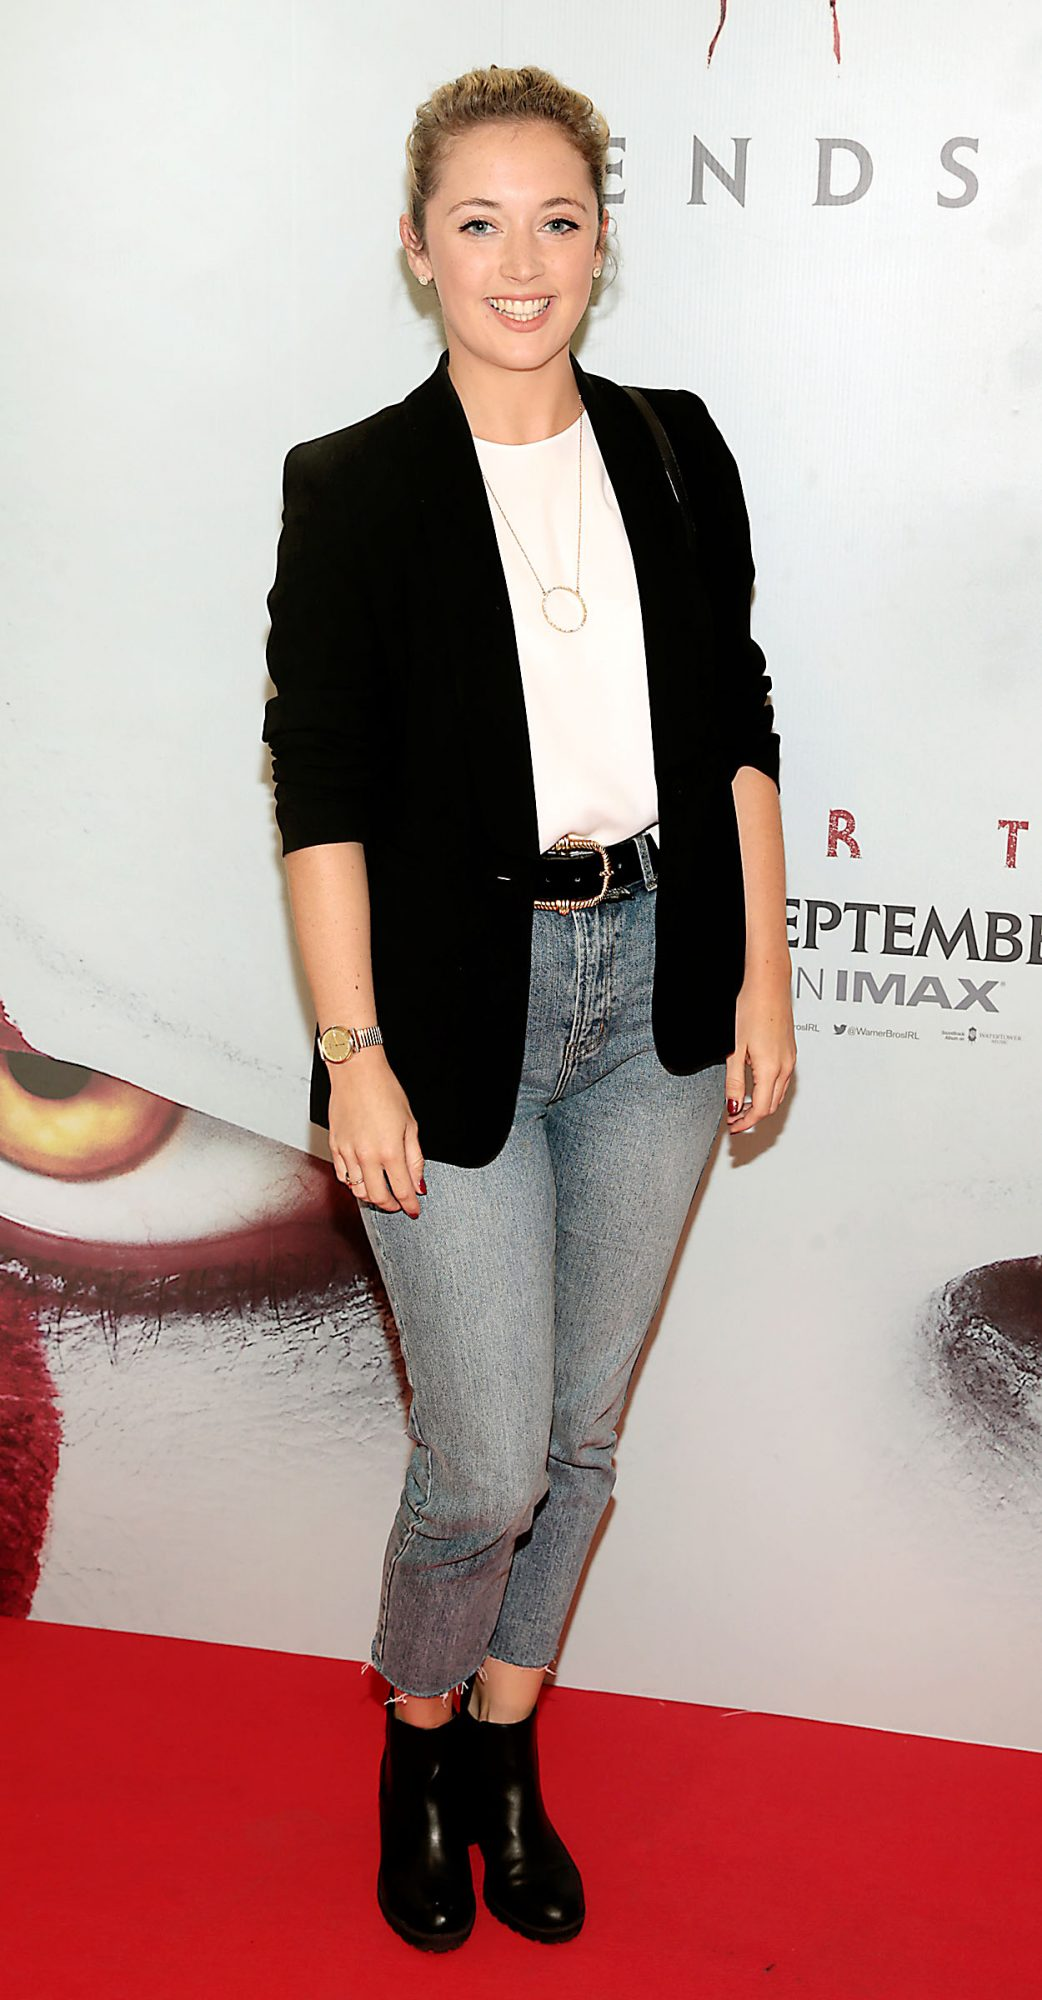 Niamh Branigan at the Irish premiere of IT Chapter 2 at the Odeon Cinema in Point Square, Dublin. Pic: Brian McEvoy.